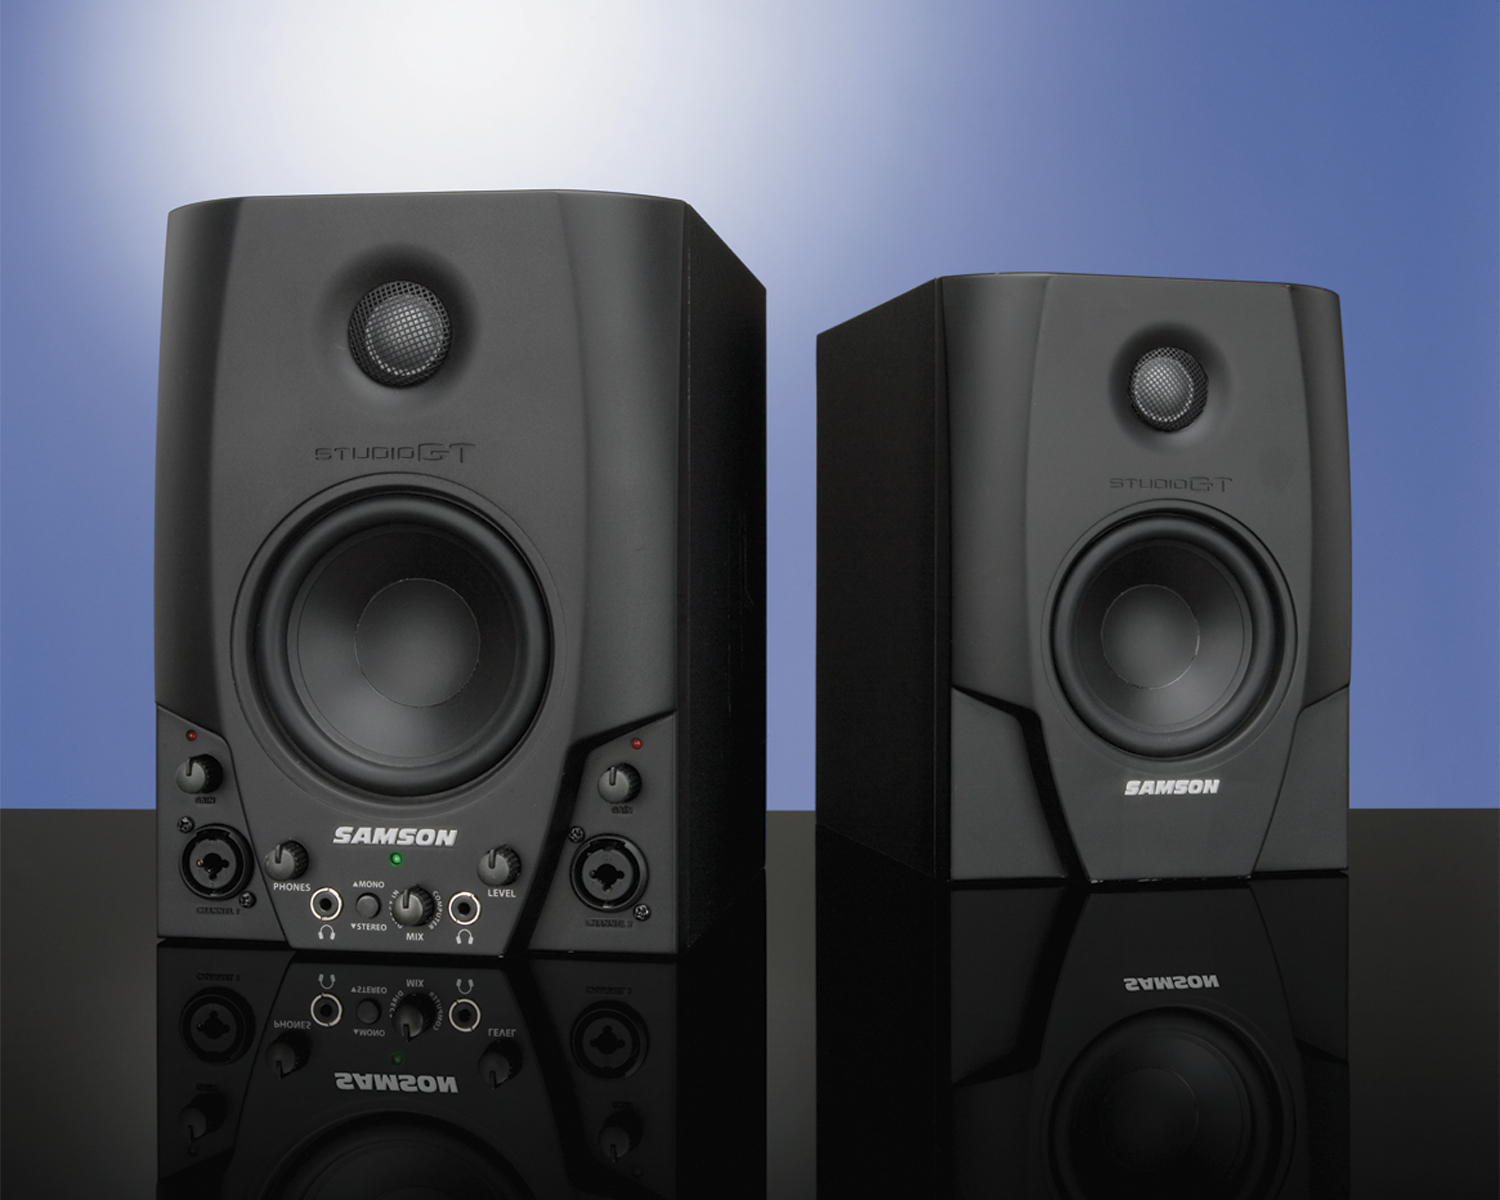 Samson Studio Gt Electronics Tv Video Home Audio Speakers Subwoofers View Larger